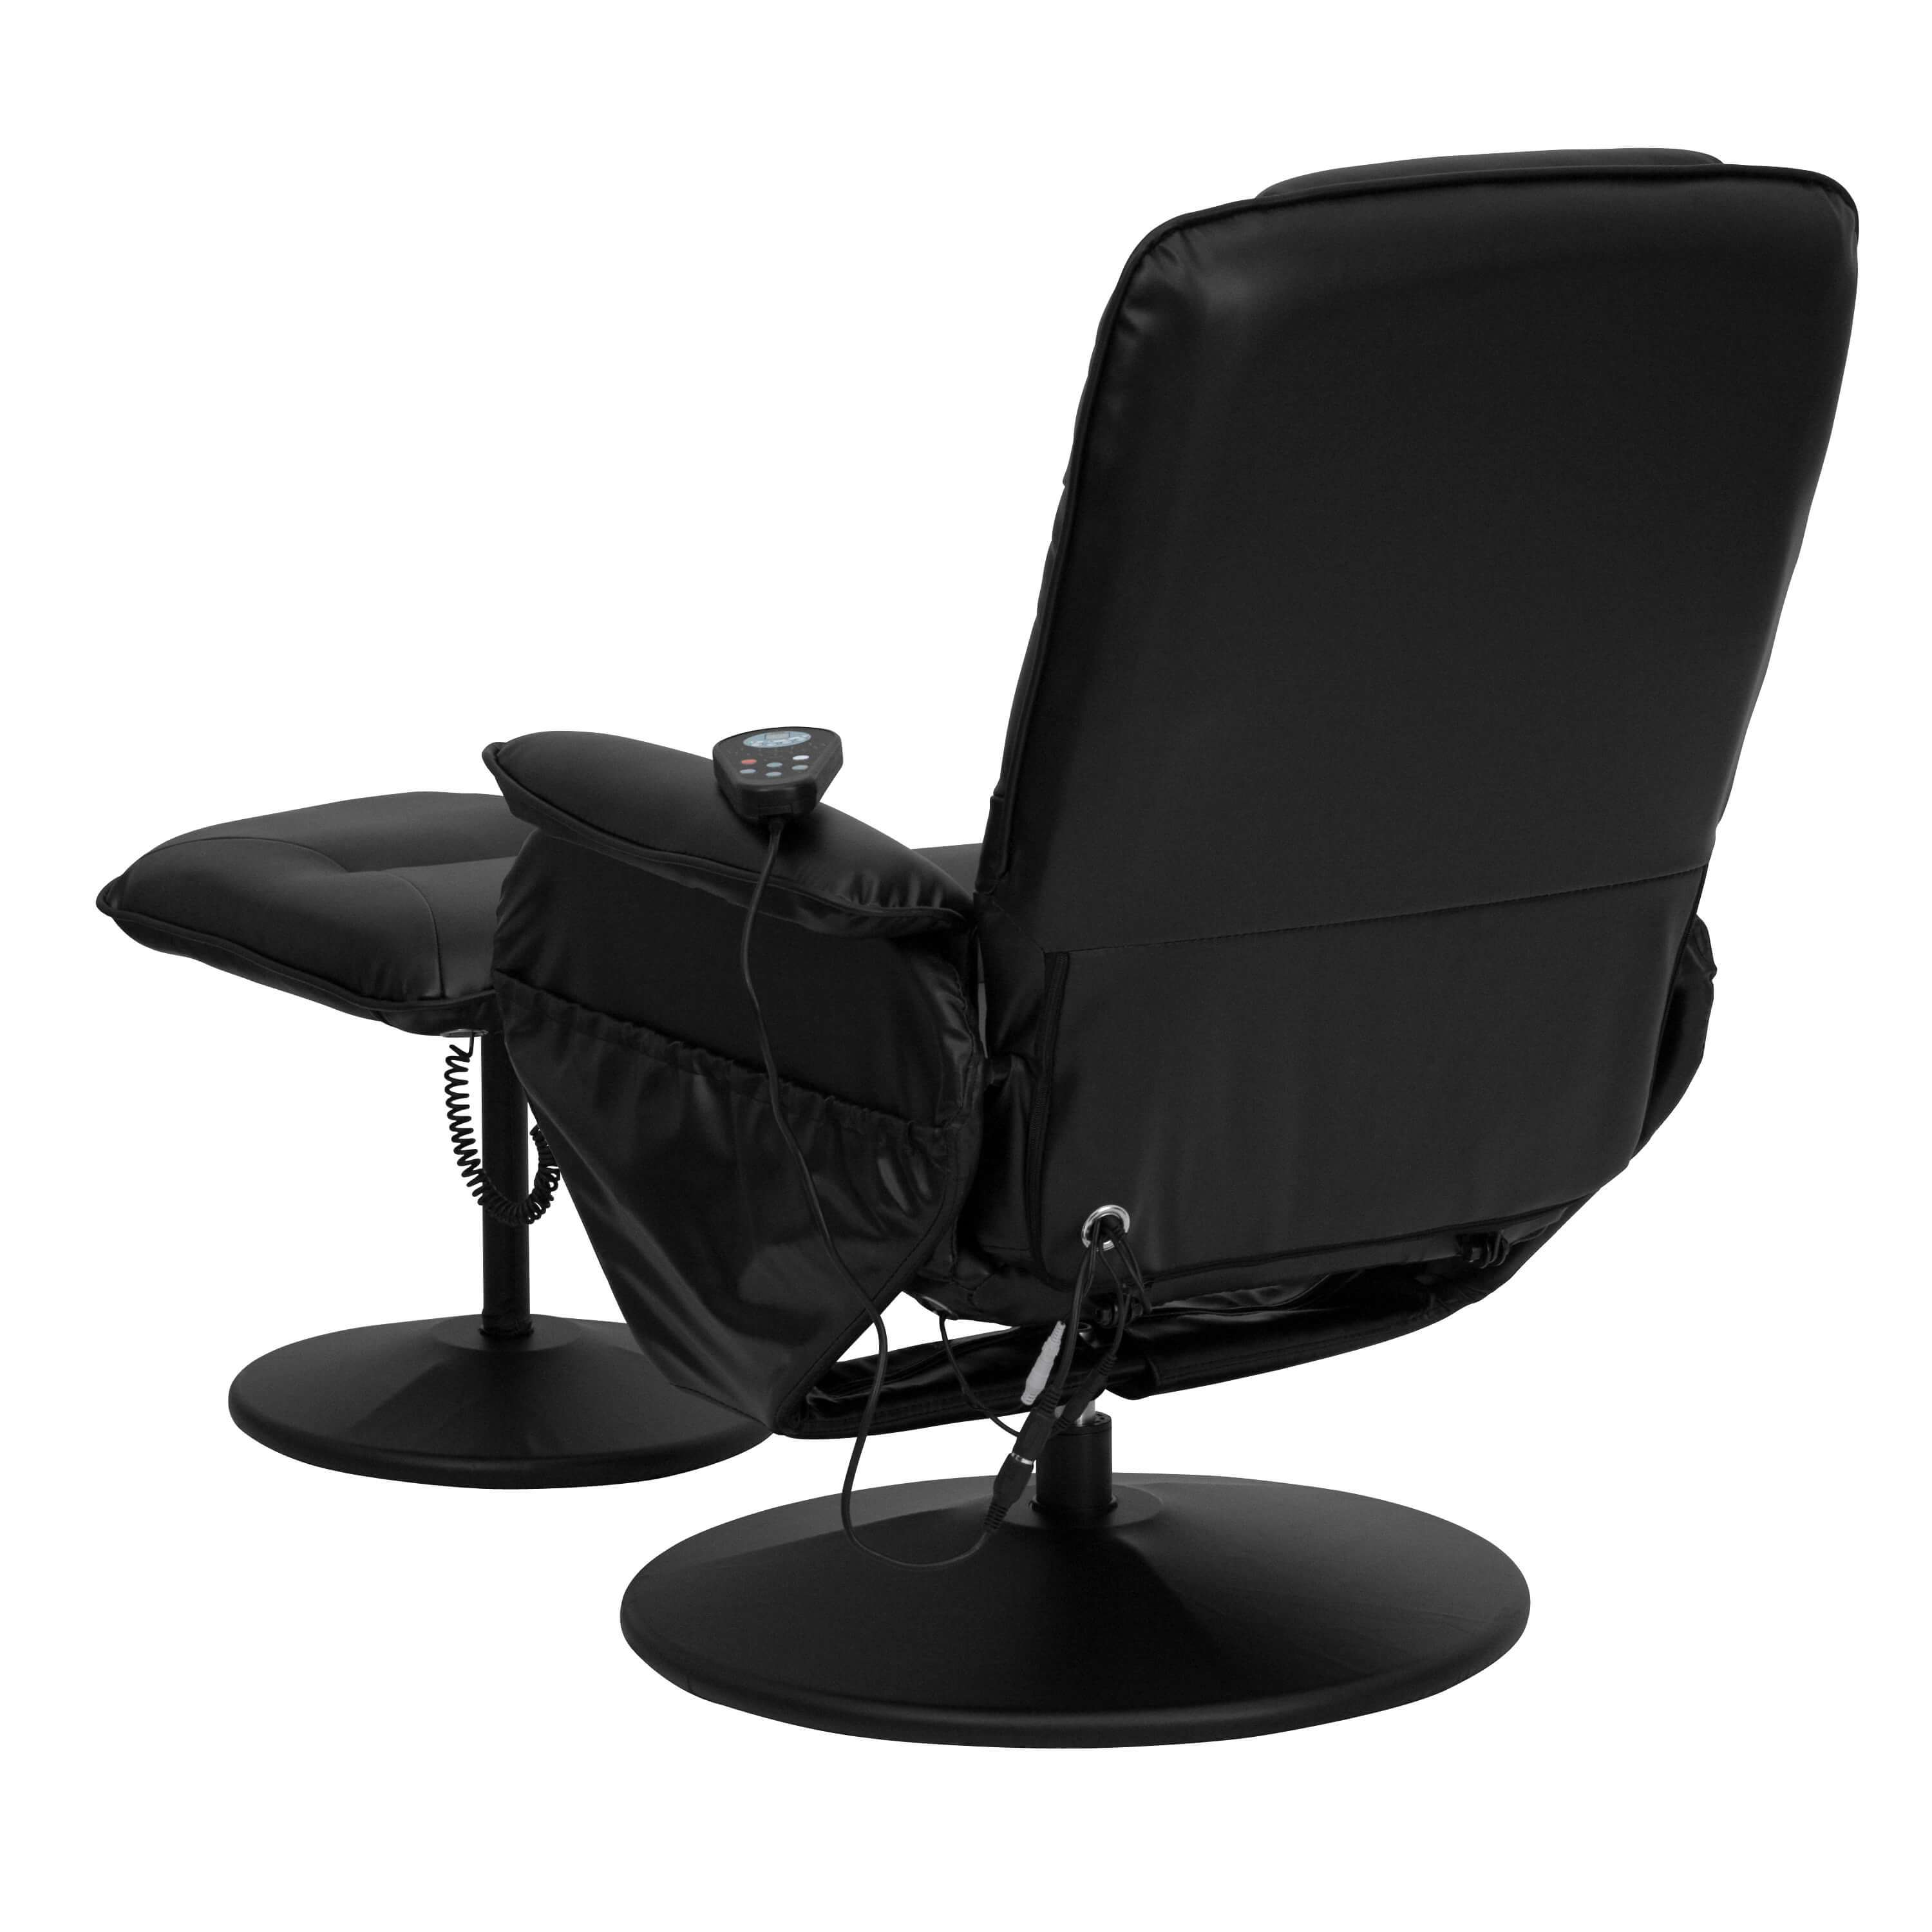 Recliner chair with massage back view